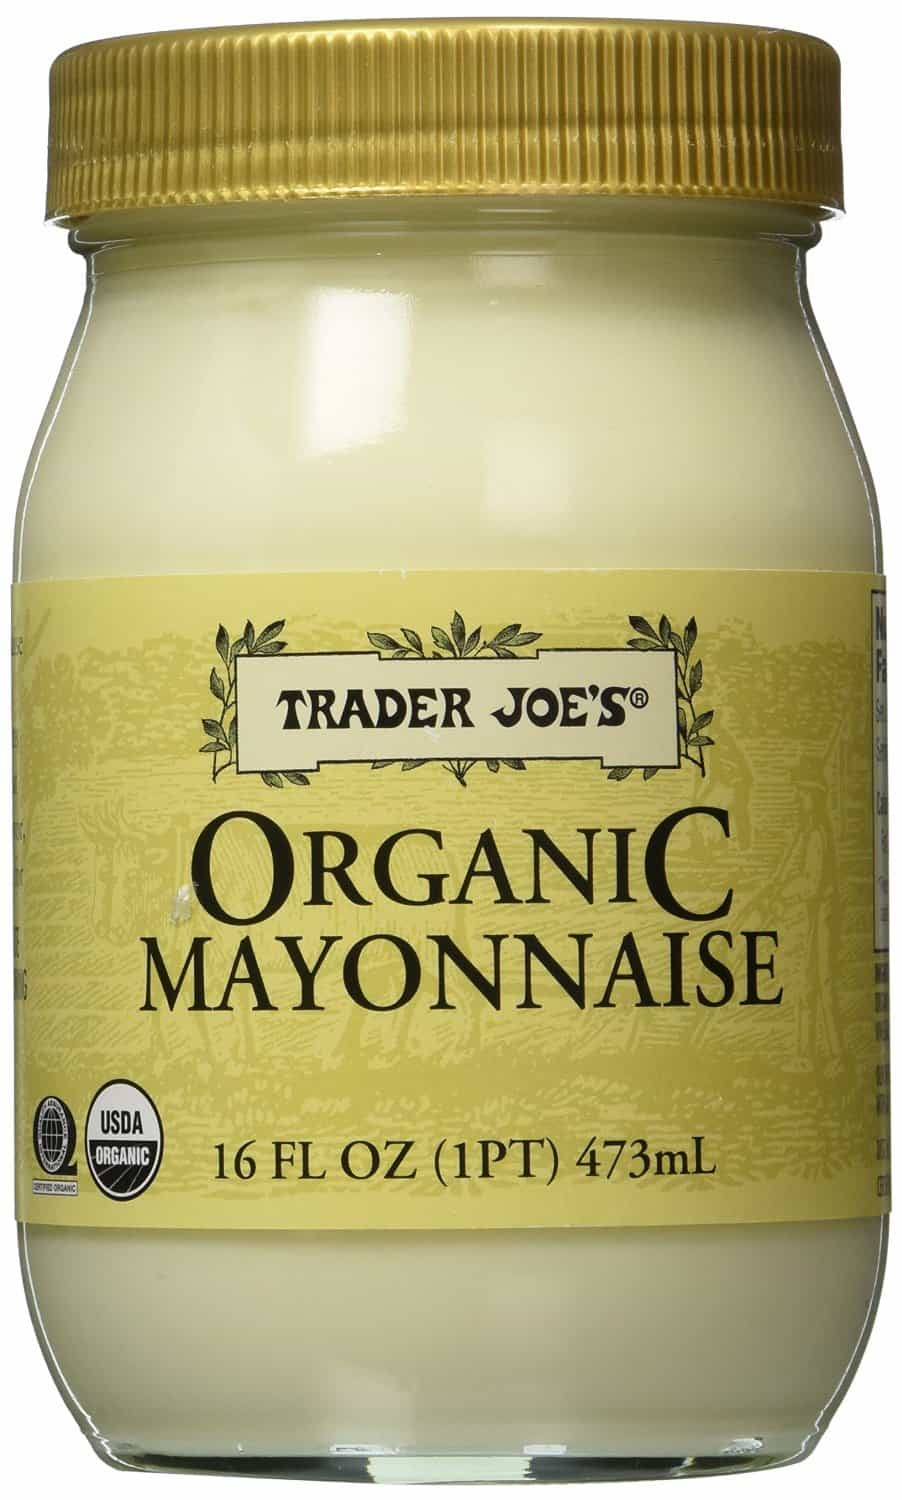 The Best Homemade Mayonnaise Ever, healthy mayo, creamy mayo for tuna salad, ham salad, chicken salad, yellow sauce, homemade blender sandwich spread, chemical free, additive free, Trader Joe's Organic Mayonnaise